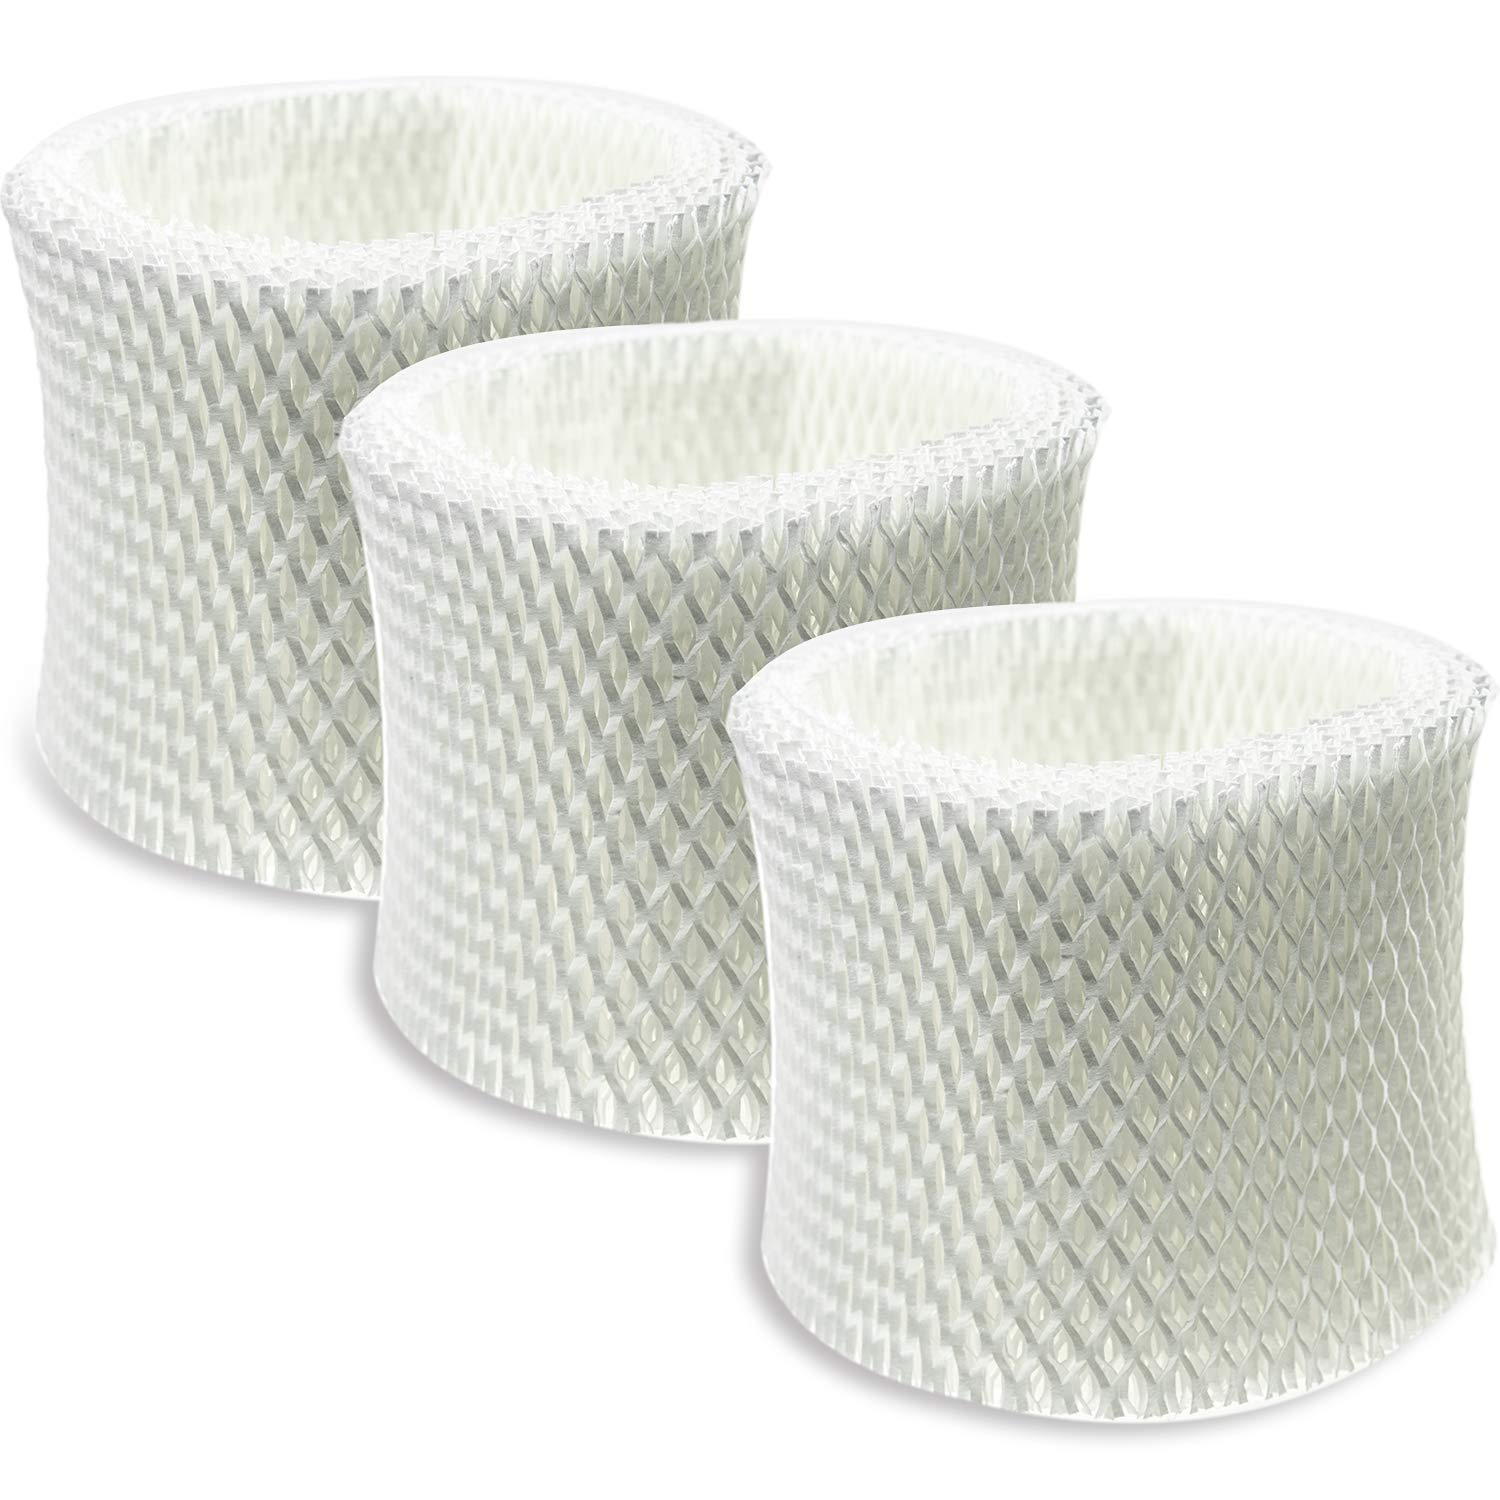 SKROS Compatible HCM-350,HCM-300T, HCM-600, HCM-710, HCM-315T Humidifier Wicking Filters Replacement for Honeywell HAC-504 and HAC-504AW,Filter A(3 Pack)